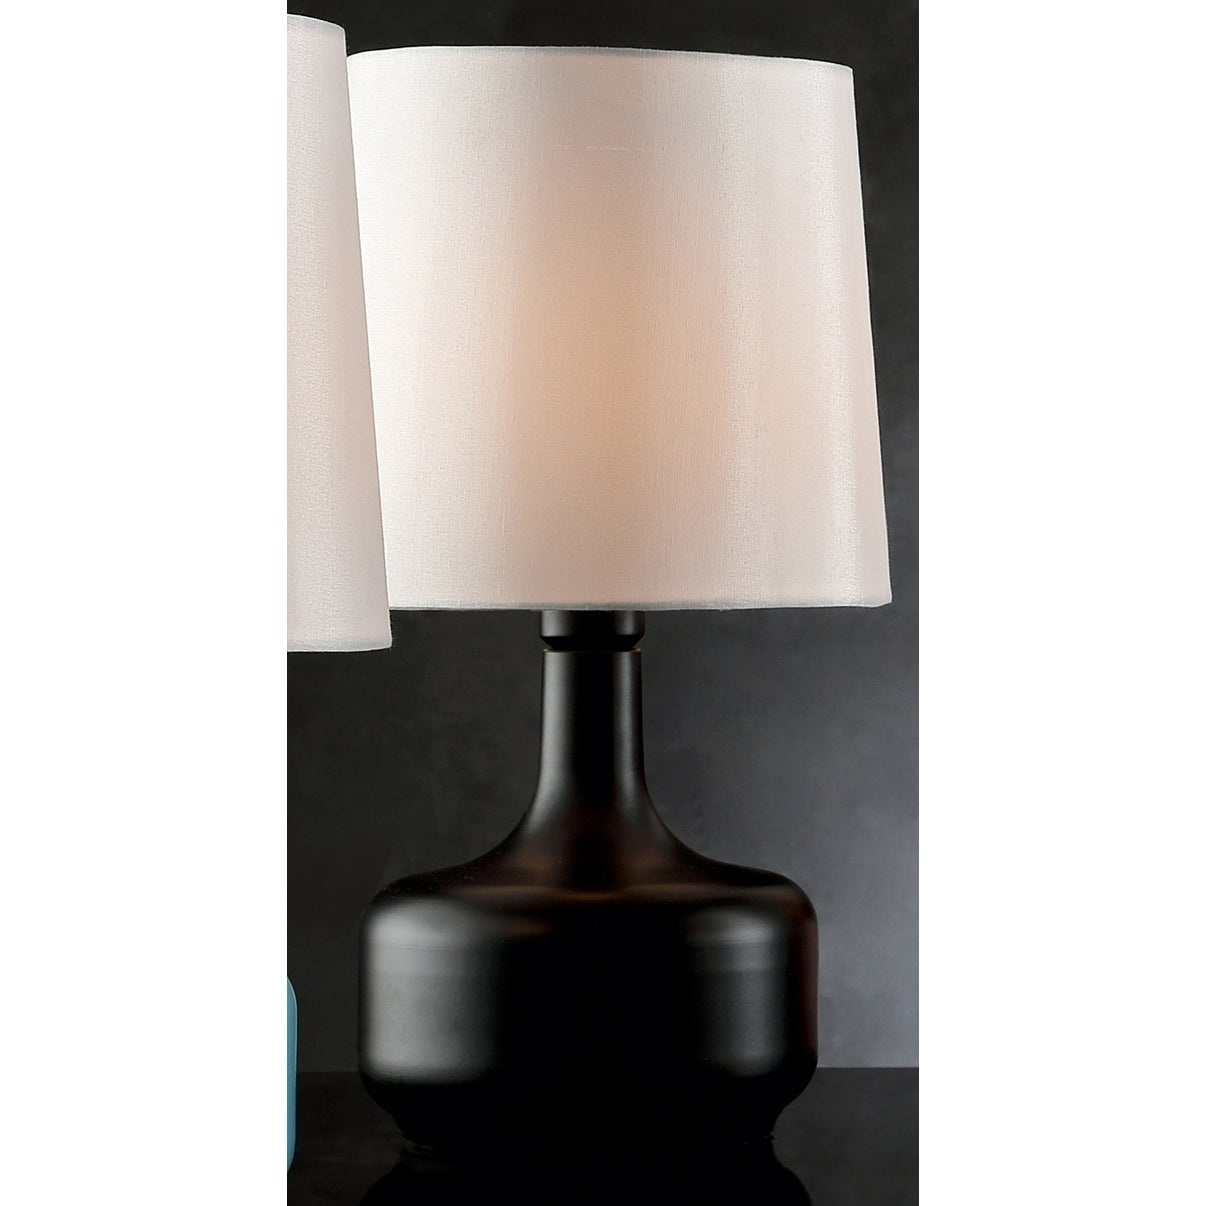 Buy black table lamps online at overstock com our best lighting deals